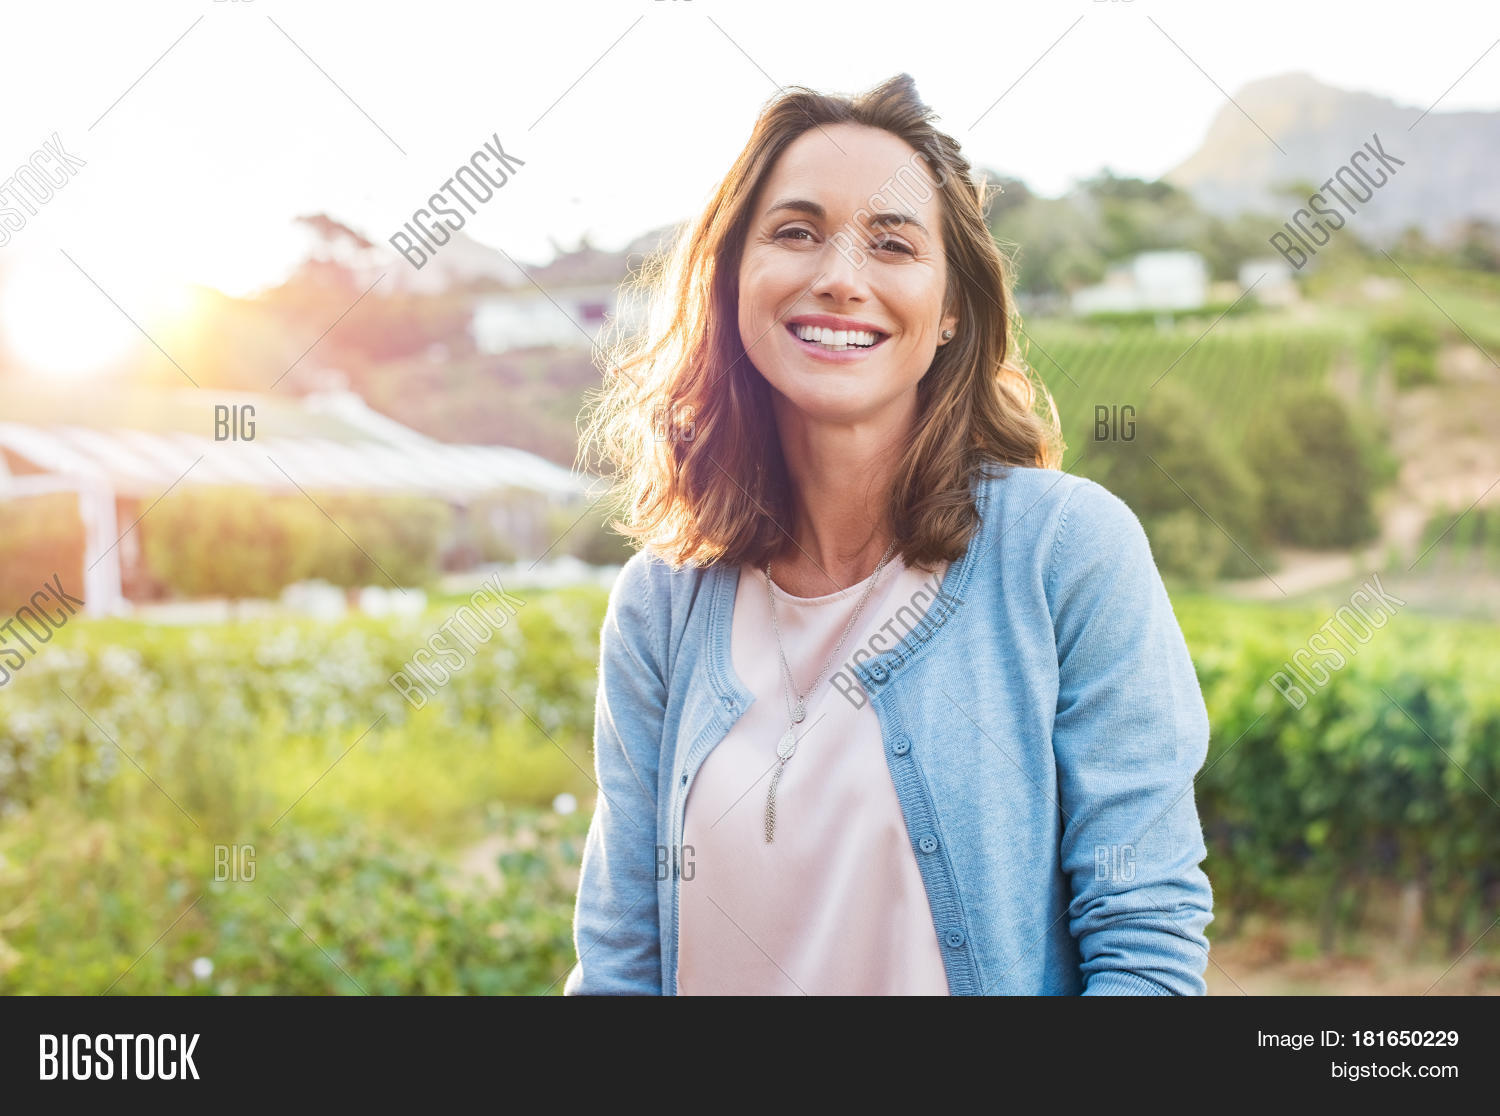 cheerful mature woman enjoying park image & photo | bigstock